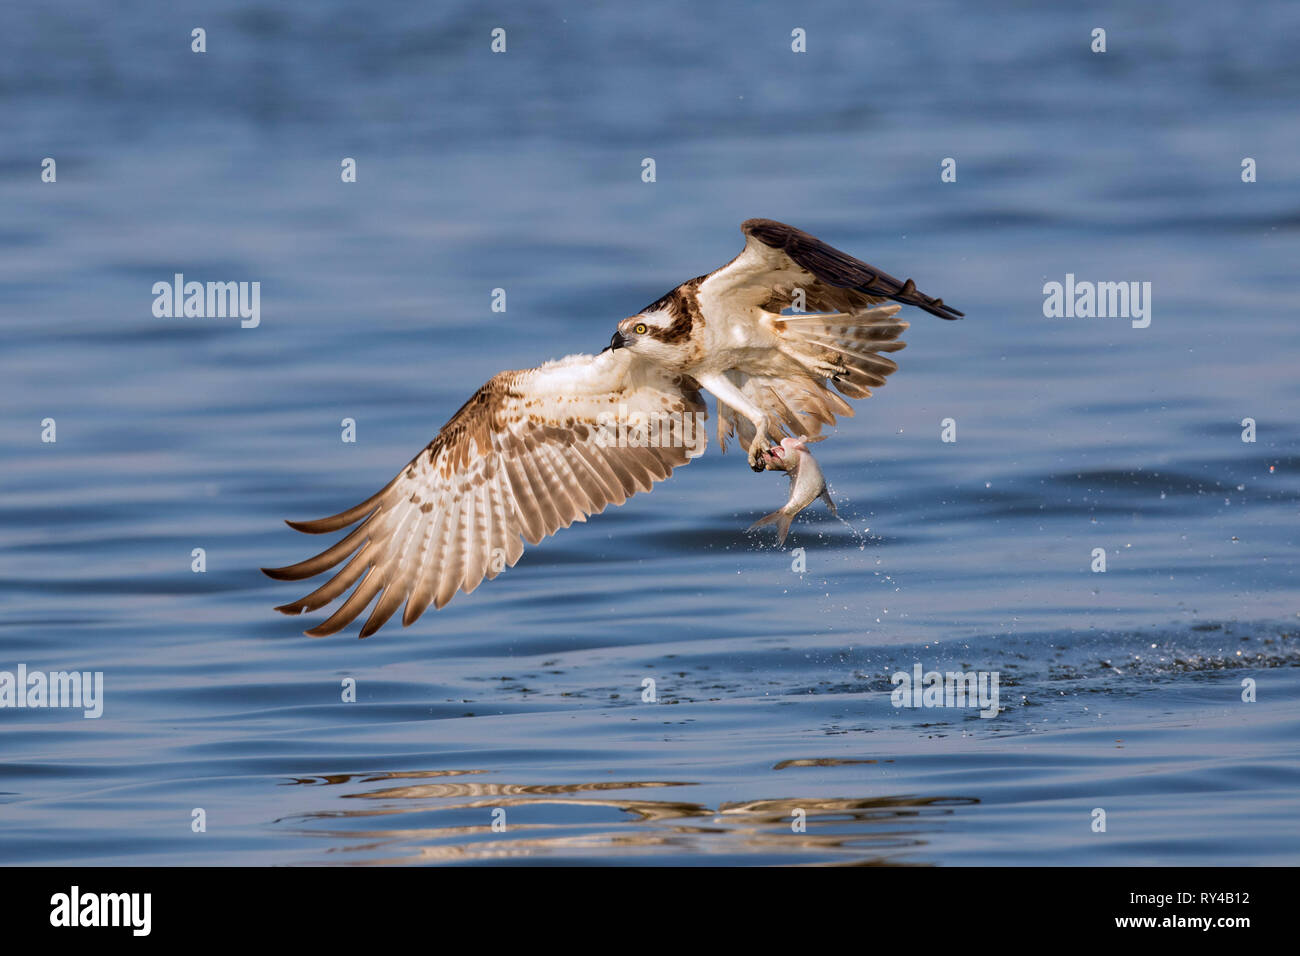 Western osprey (Pandion haliaetus) catching fish from lake with its talons - Stock Image